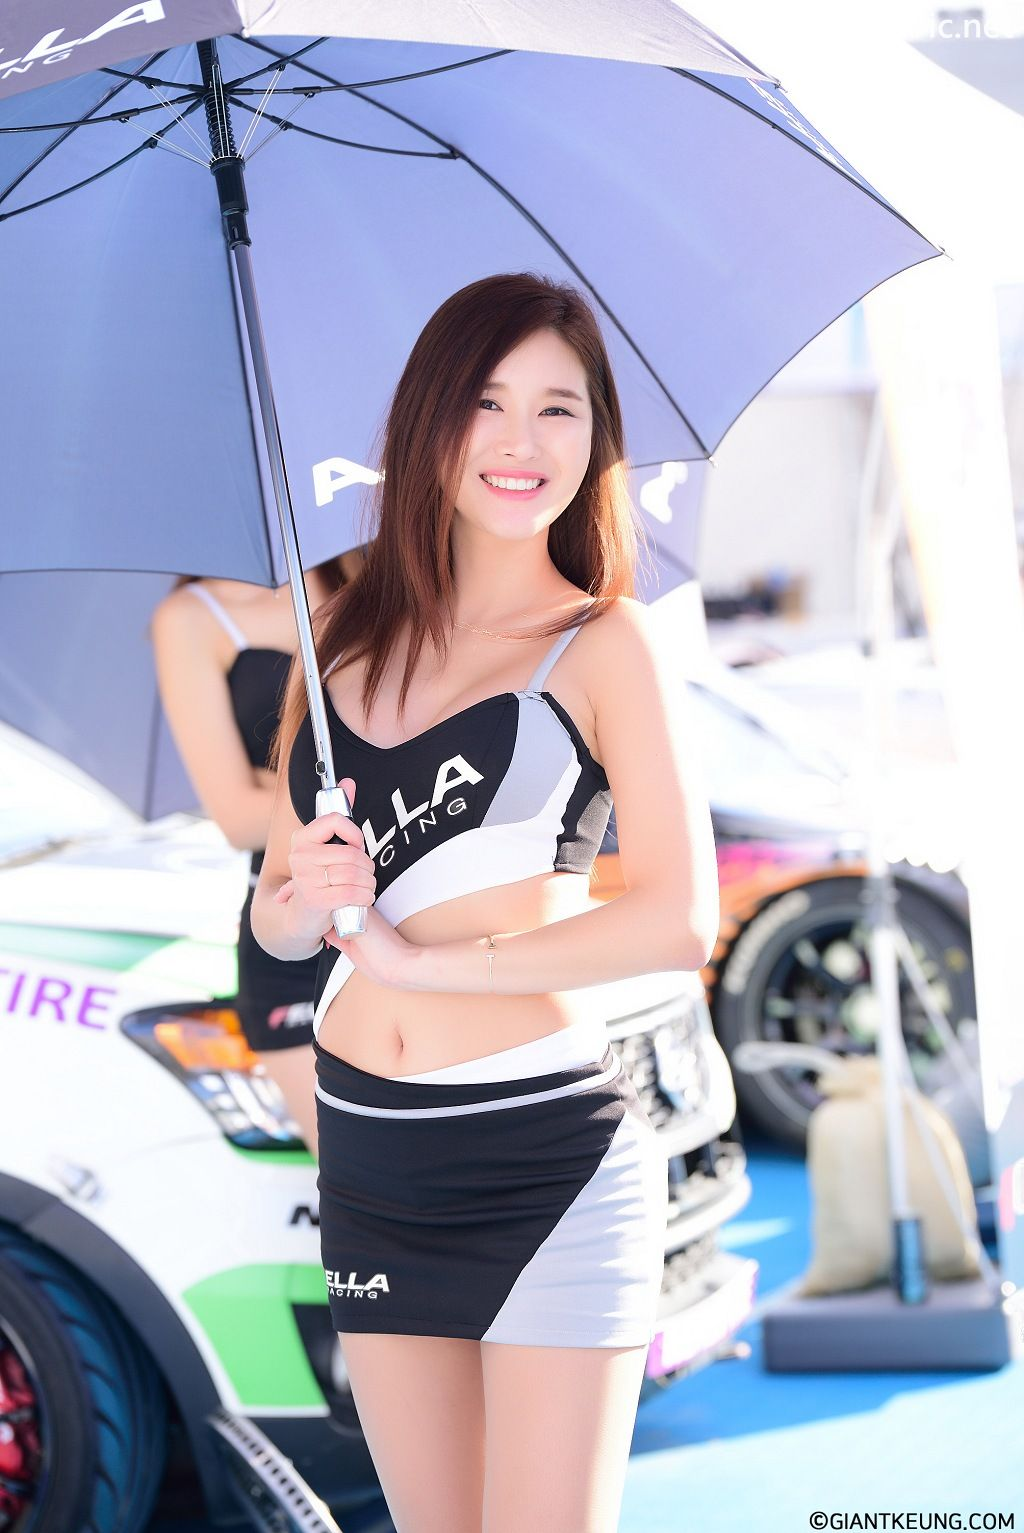 Image-Korean-Racing-Model-Cheon-Se-Ra-At-Incheon-Korea-Tuning-Festival-TruePic.net- Picture-4